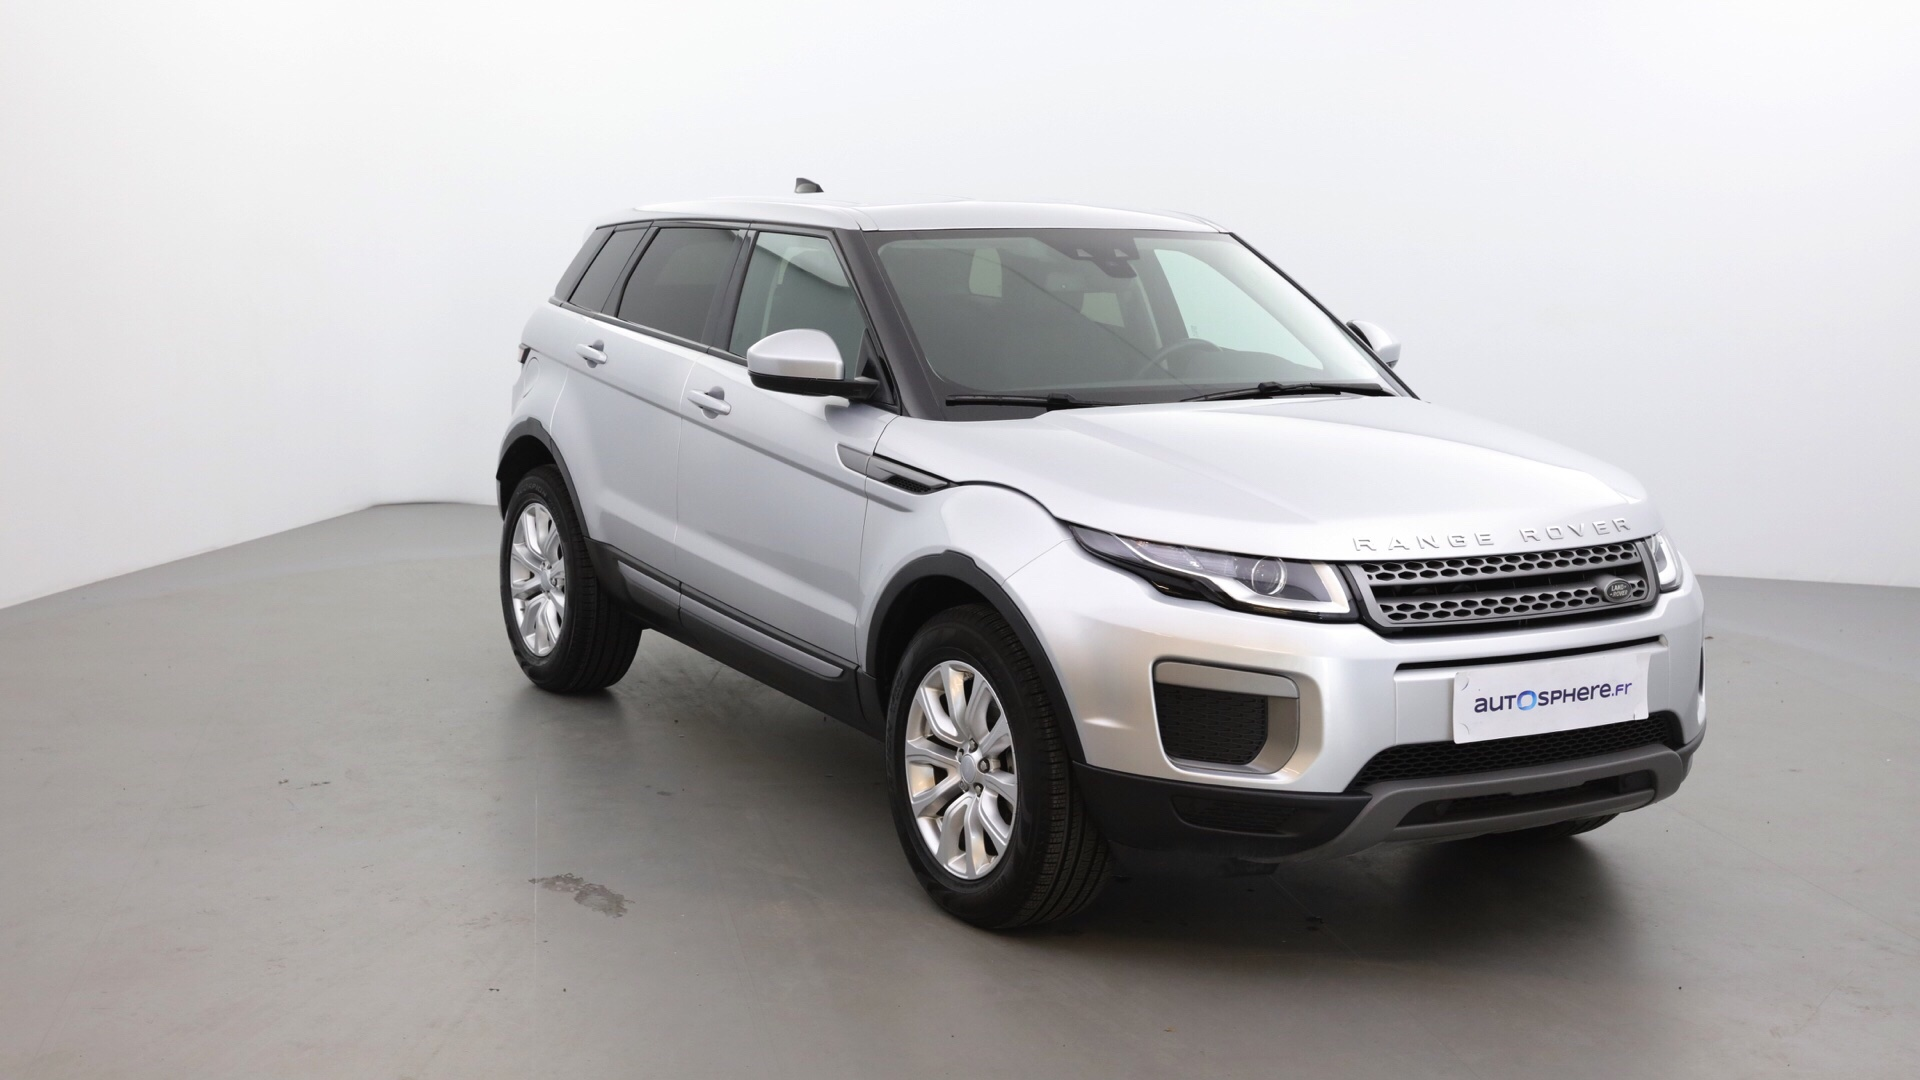 LAND-ROVER EVOQUE 2.0 TD4 150 PURE BVA MARK IV - Miniature 3